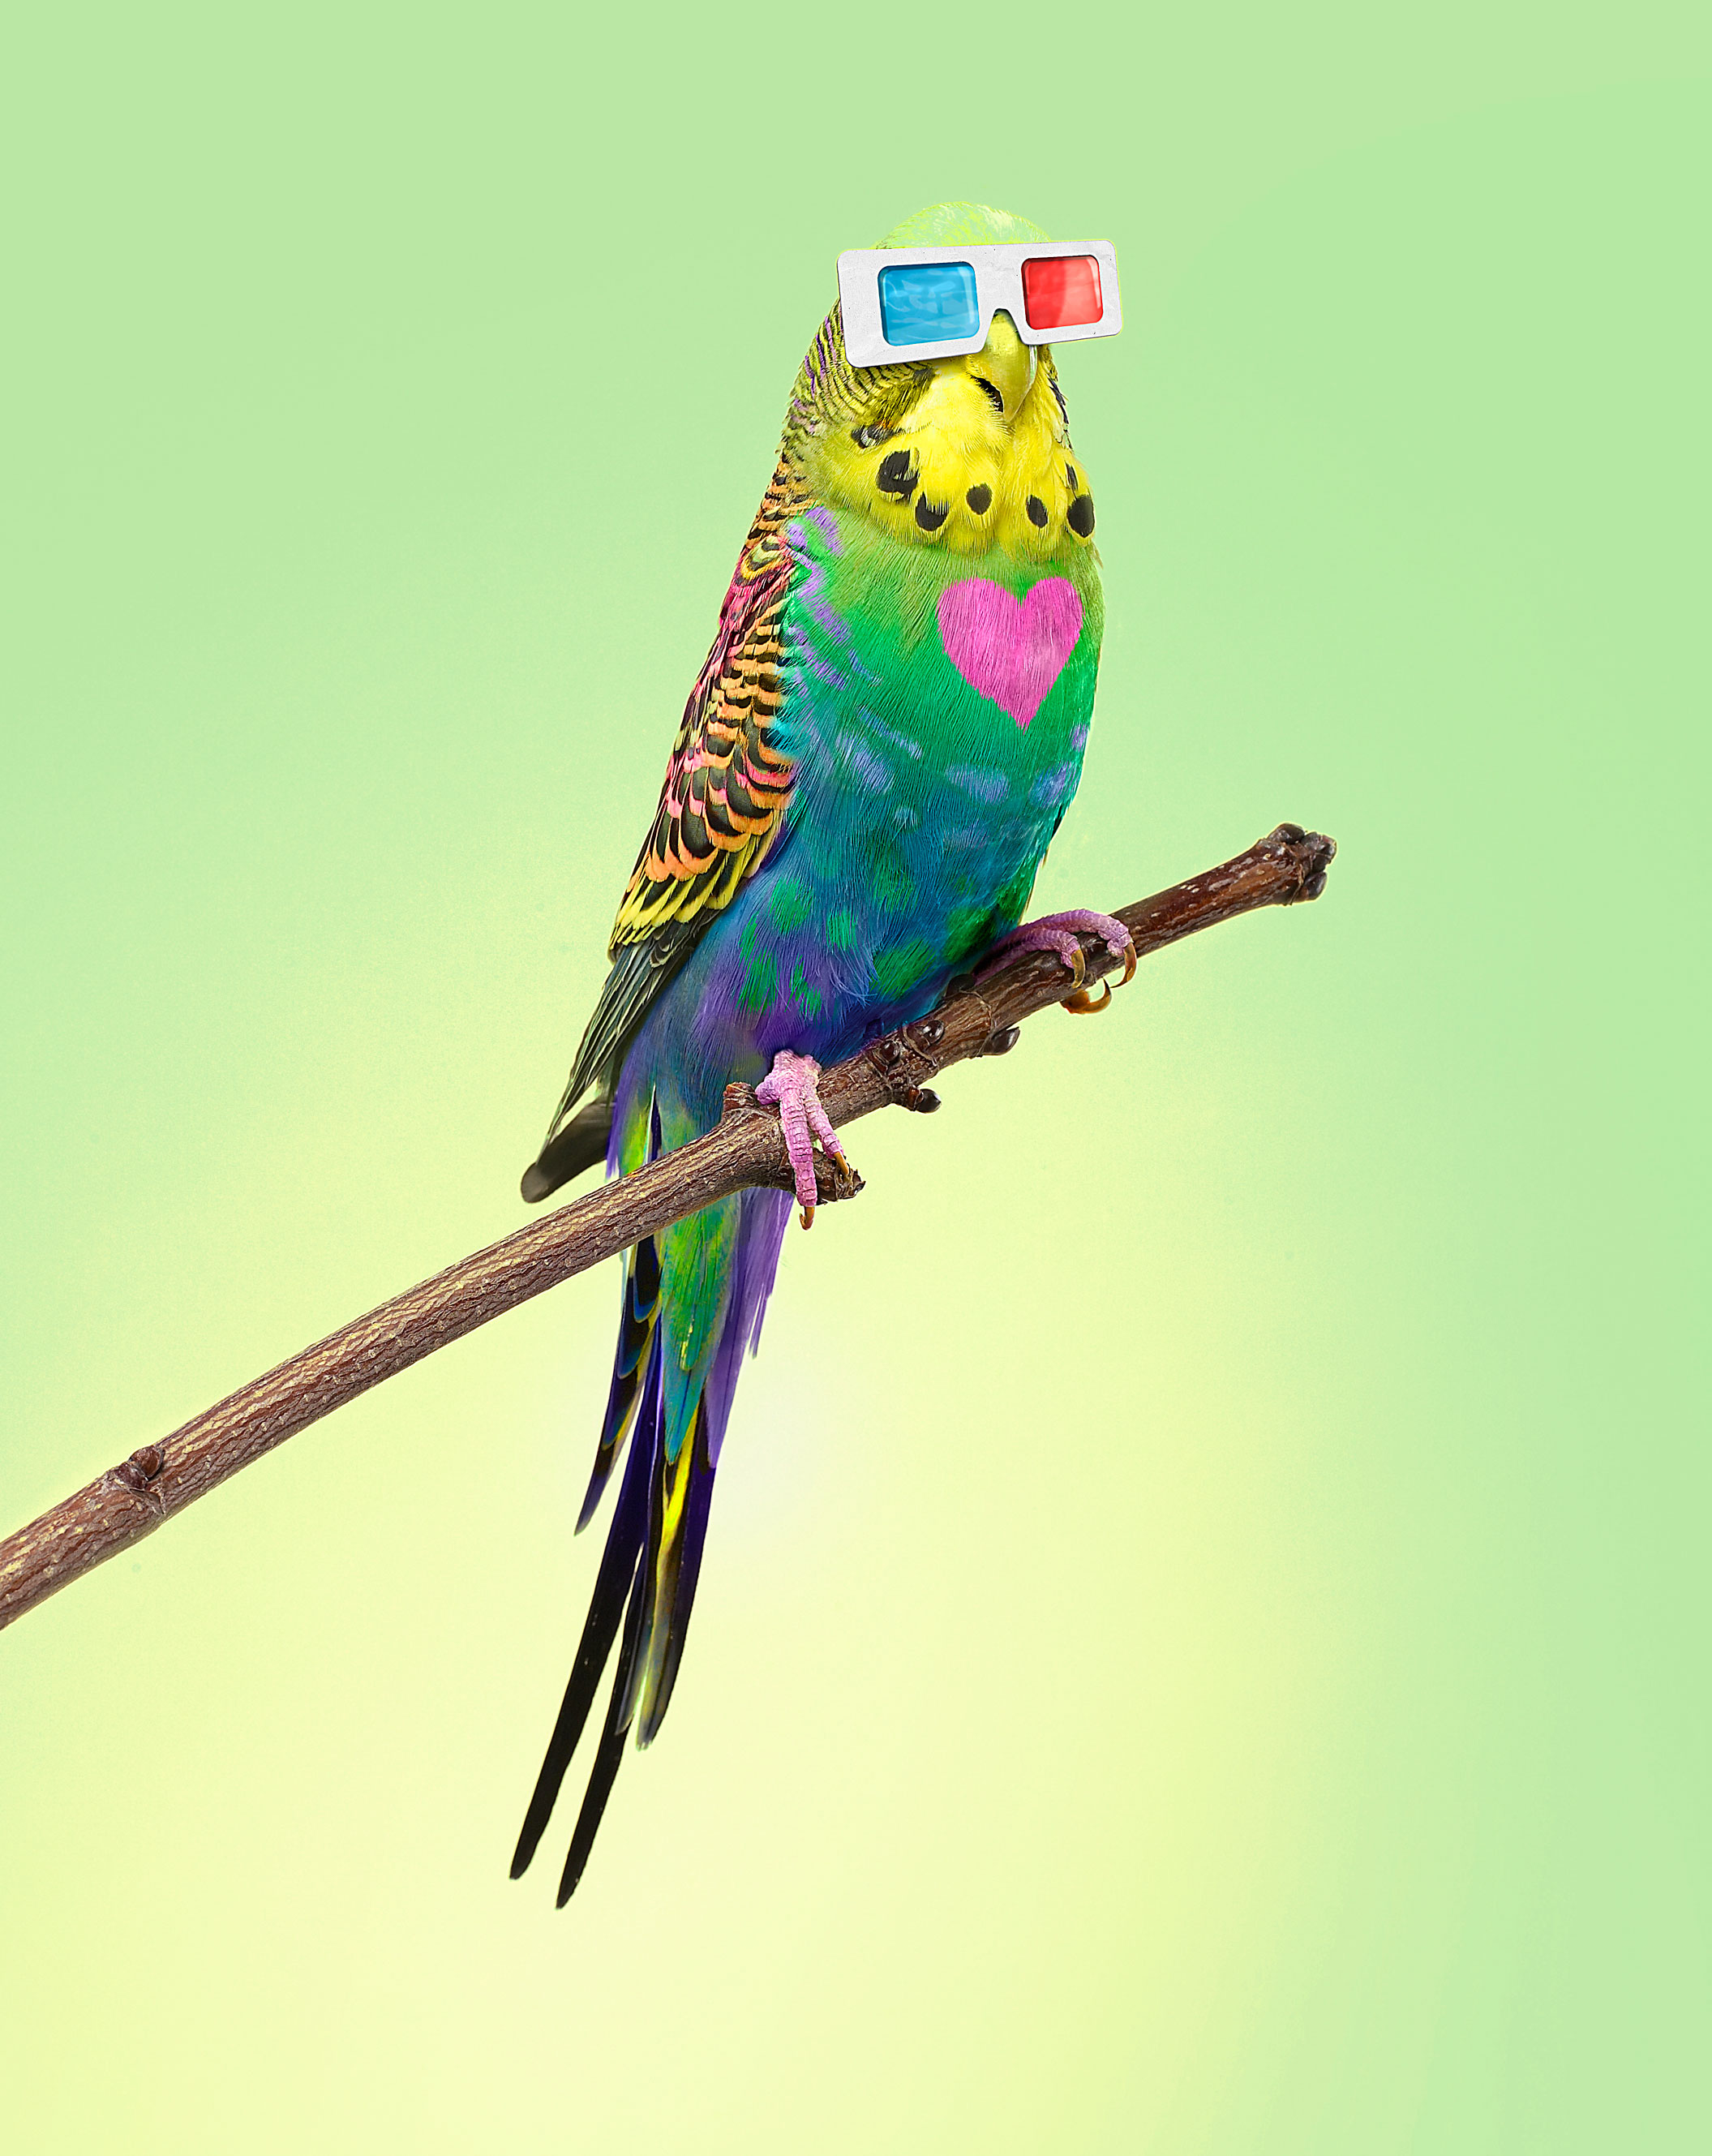 Parrot in 3D Glasses